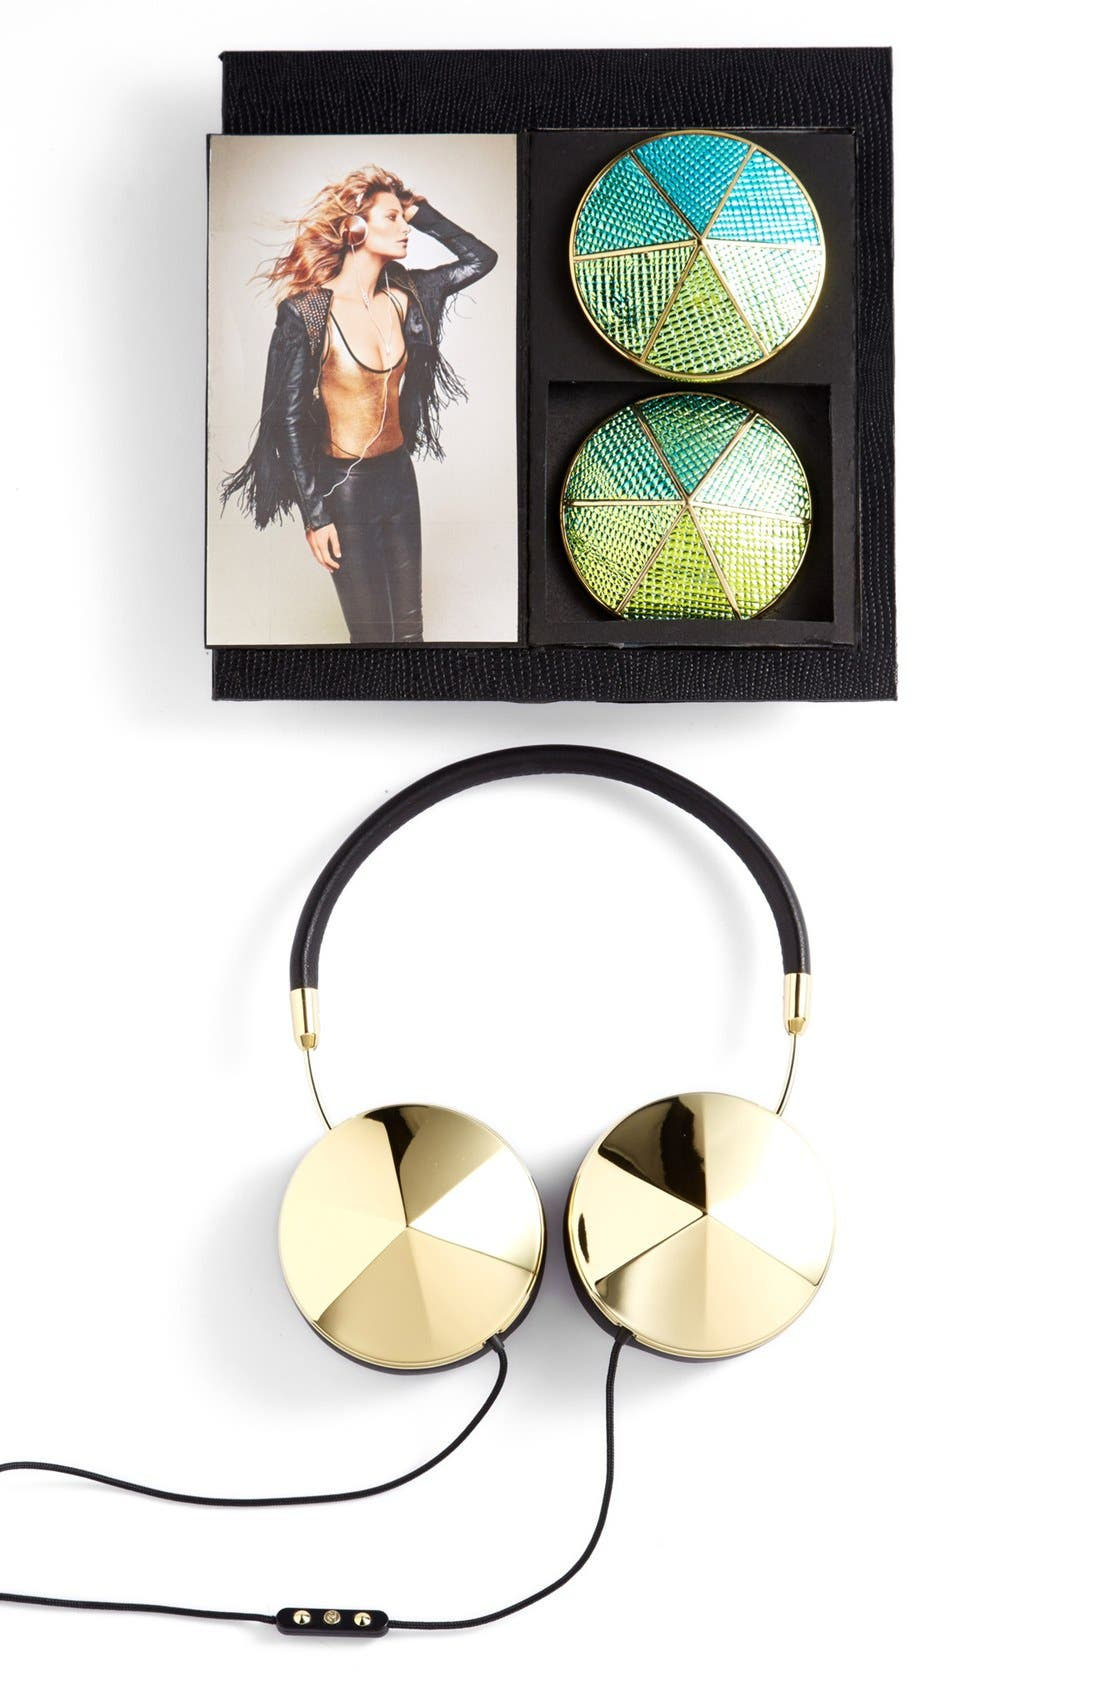 Main Image - Frends 'Taylor - Rebecca Minkoff' Headphones